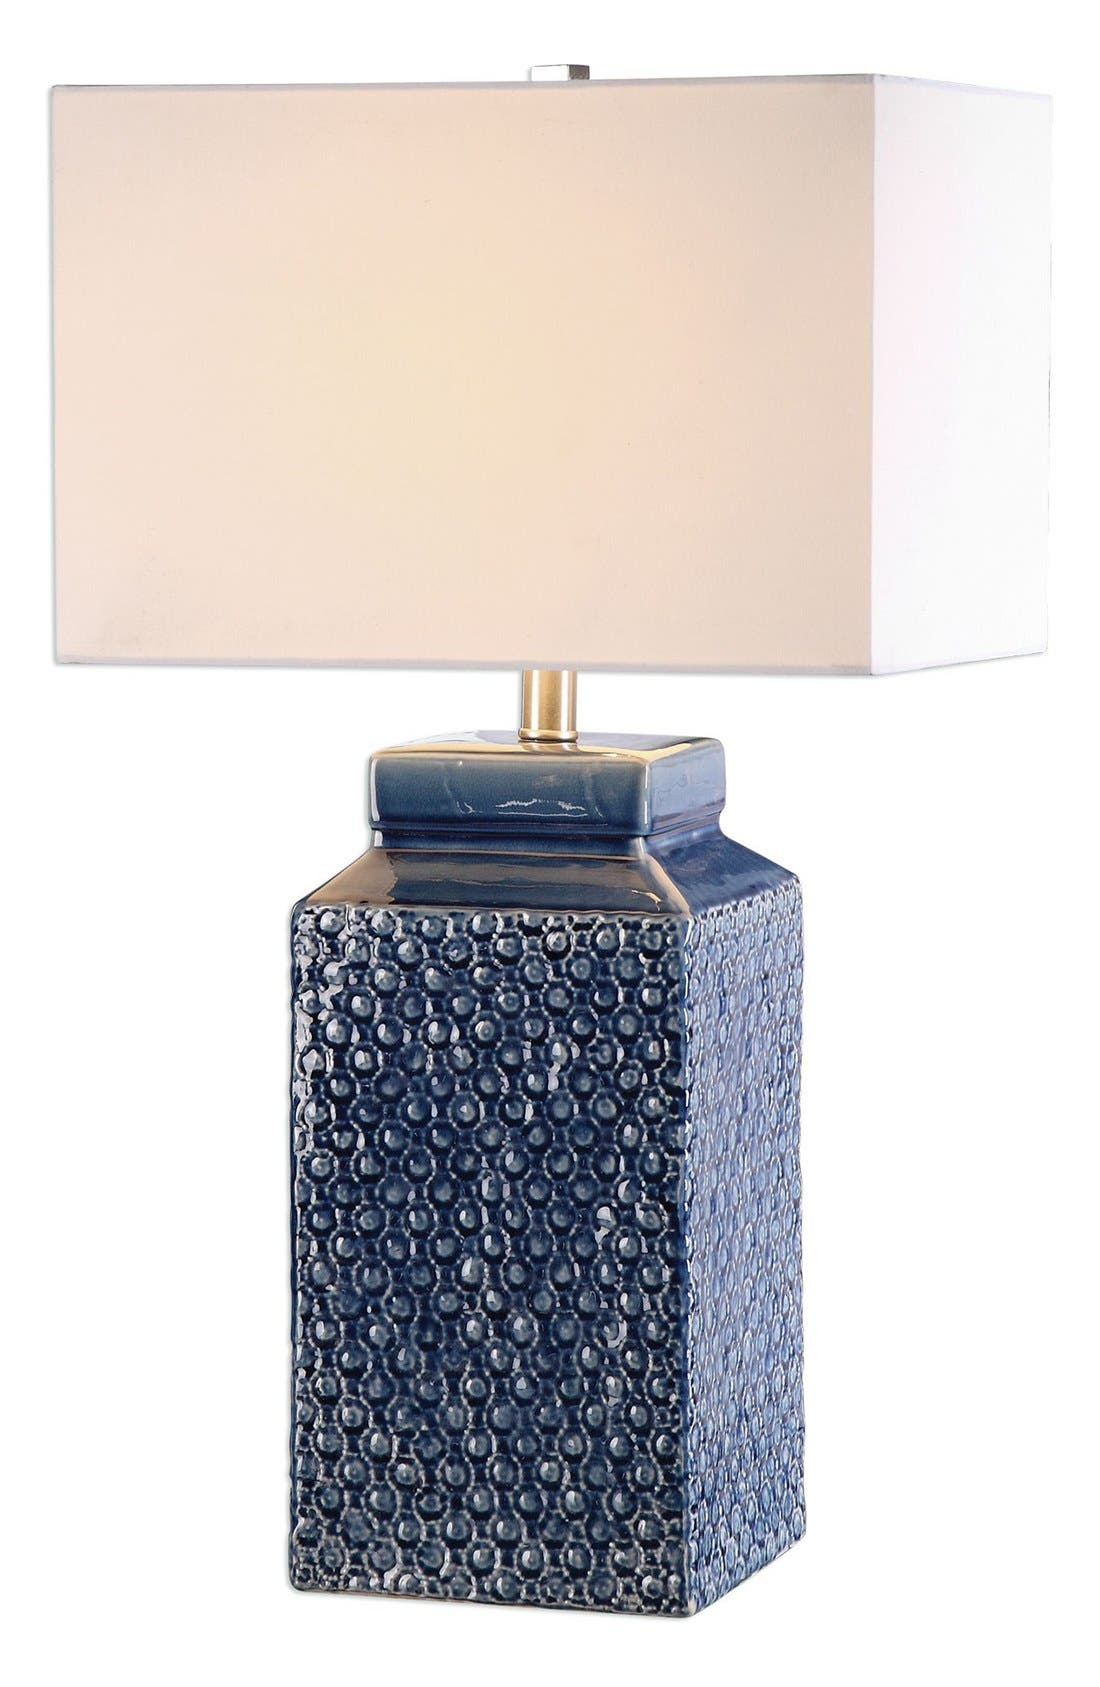 Alternate Image 1 Selected - Uttermost 'Sapphire' Glazed Ceramic Table Lamp